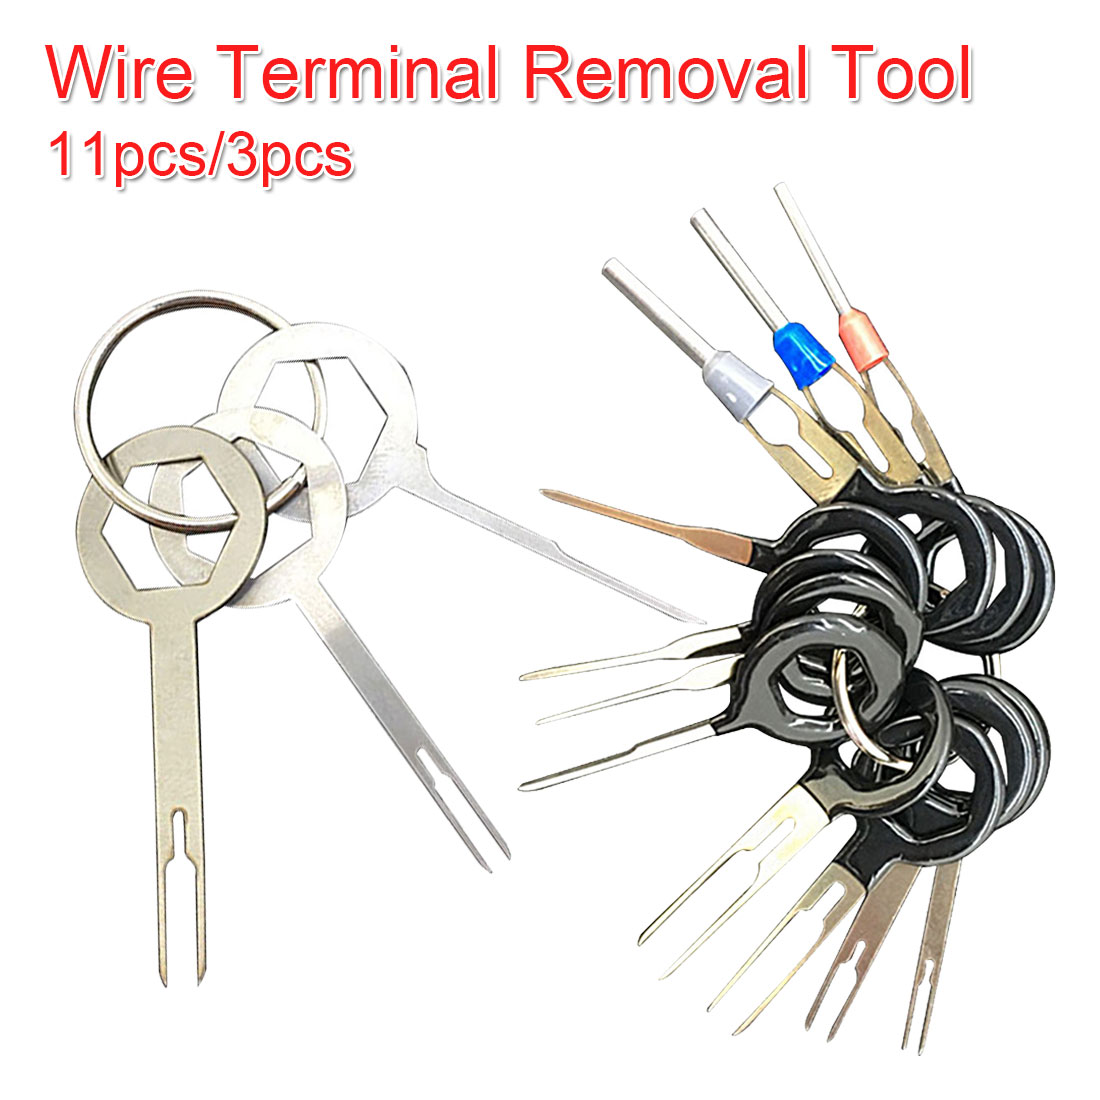 11pcs/3pcs Terminal Removal Tools Car Electrical Wiring Crimp Connector Pin Extractor Kit